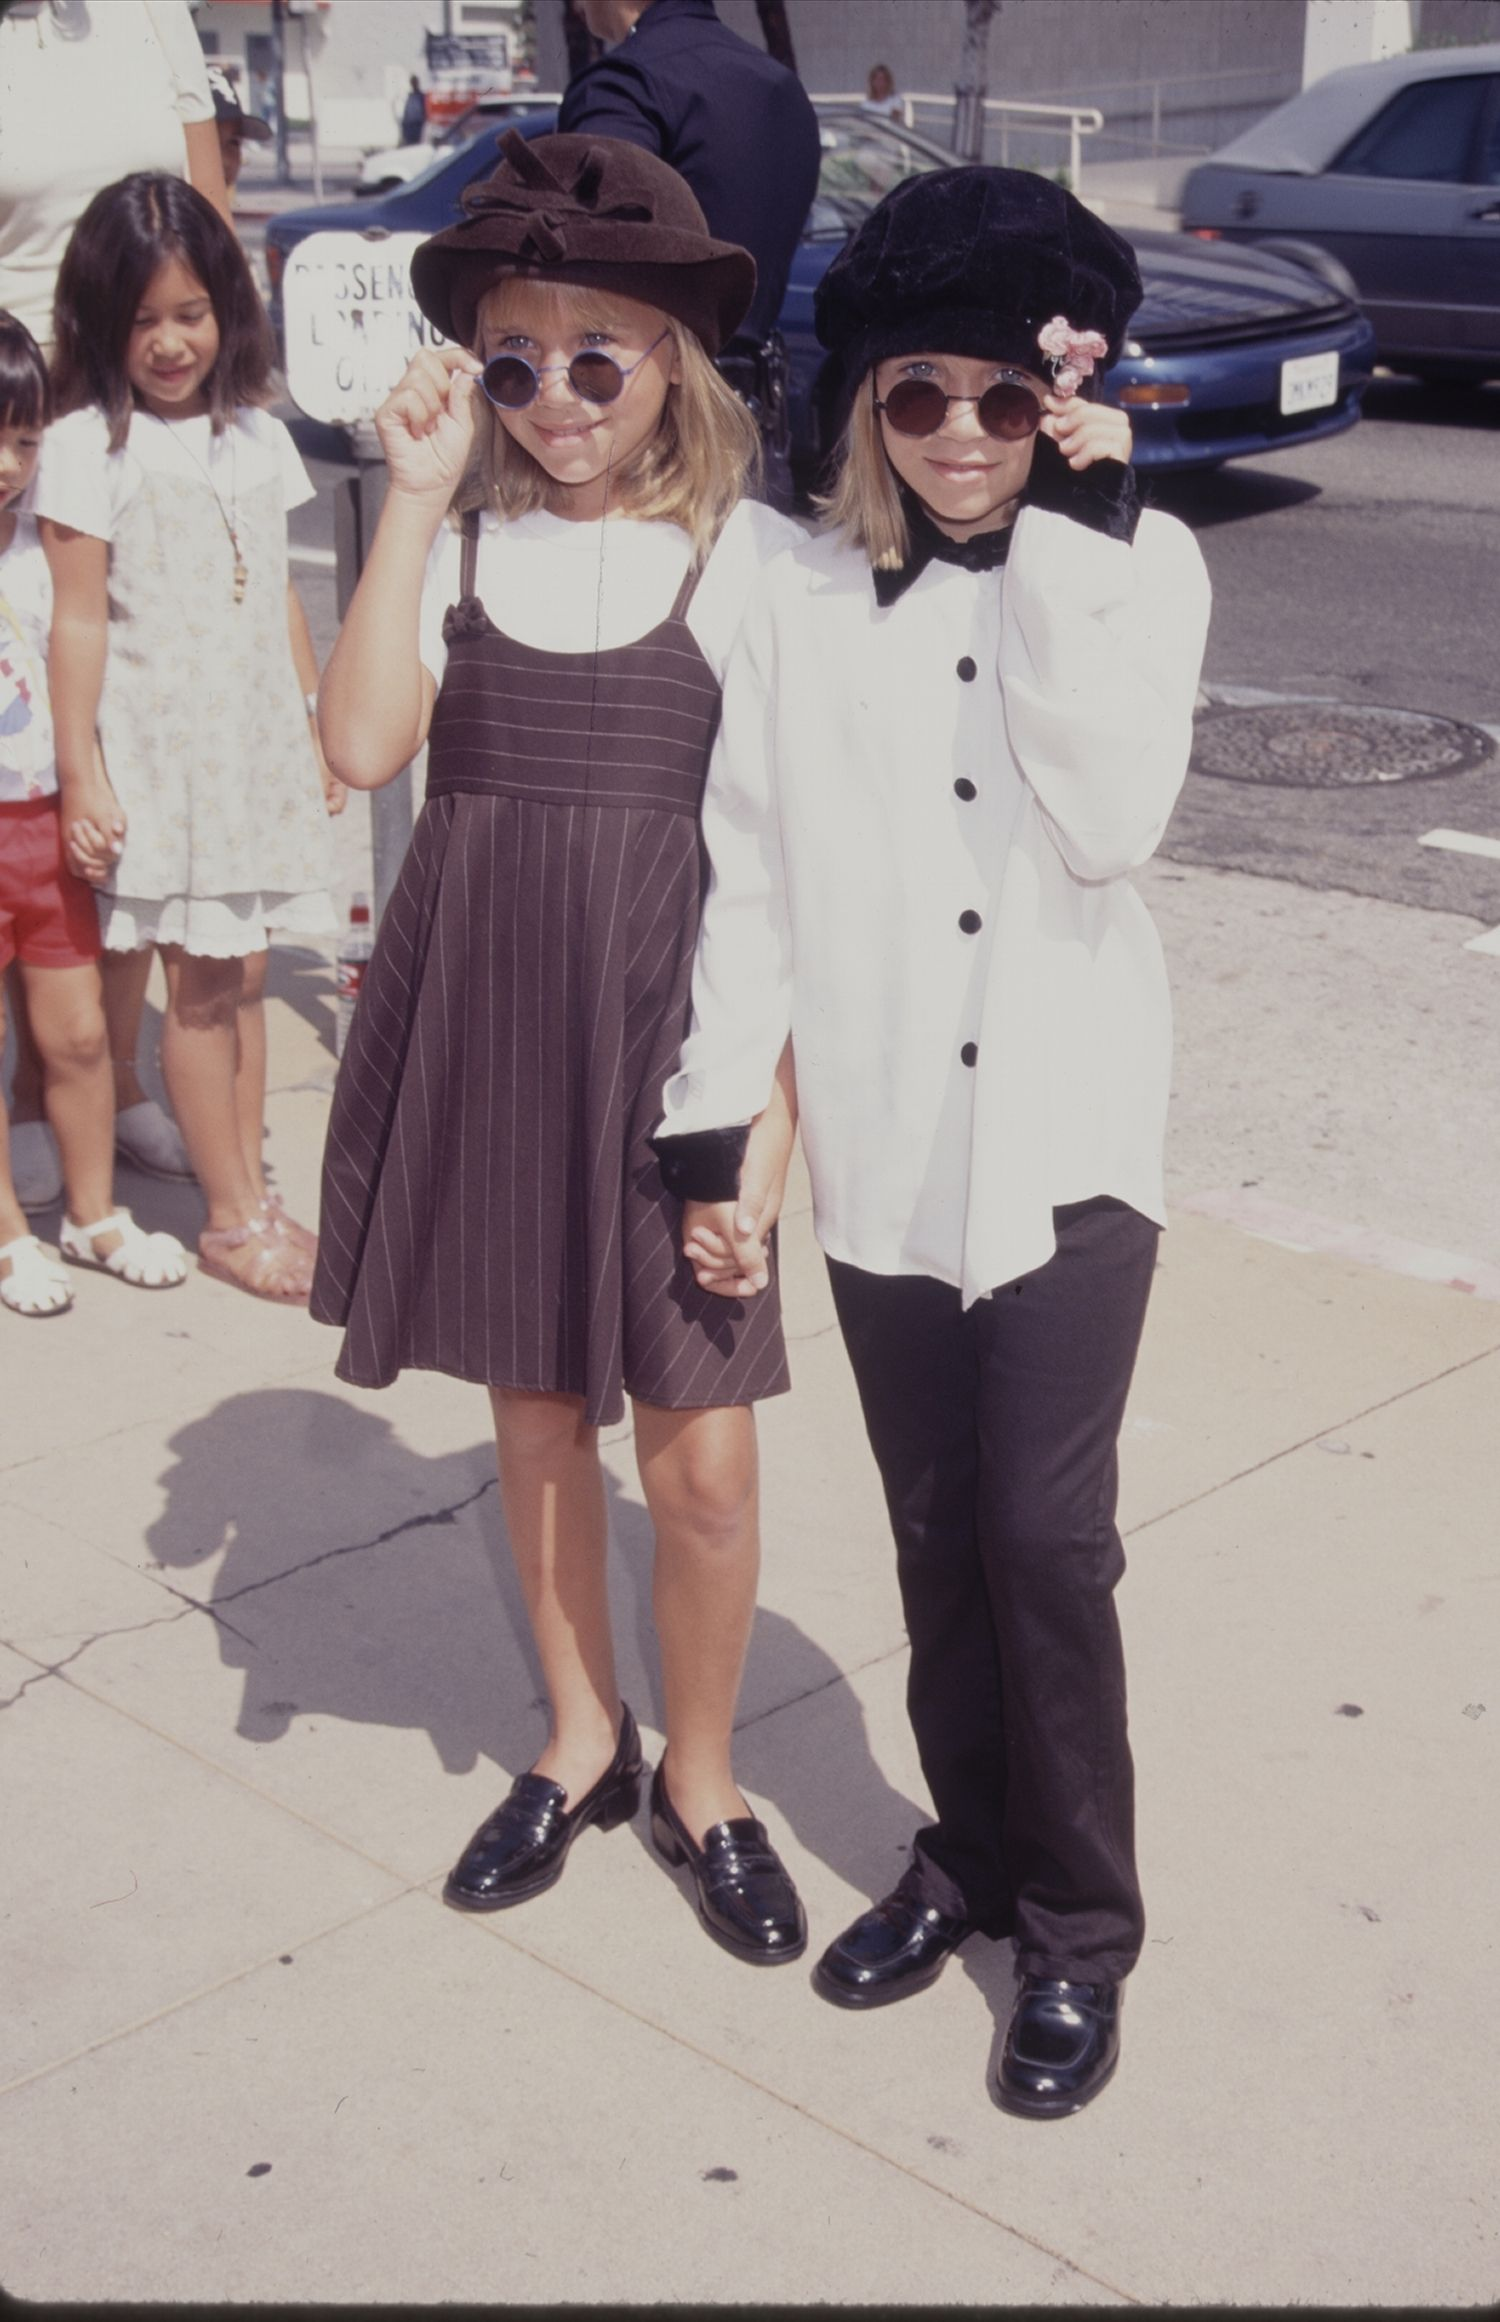 18 Geburtstag Party Outfit Mary Kate And Ashley Olsen S Best Fashion Moments Mary Kate And